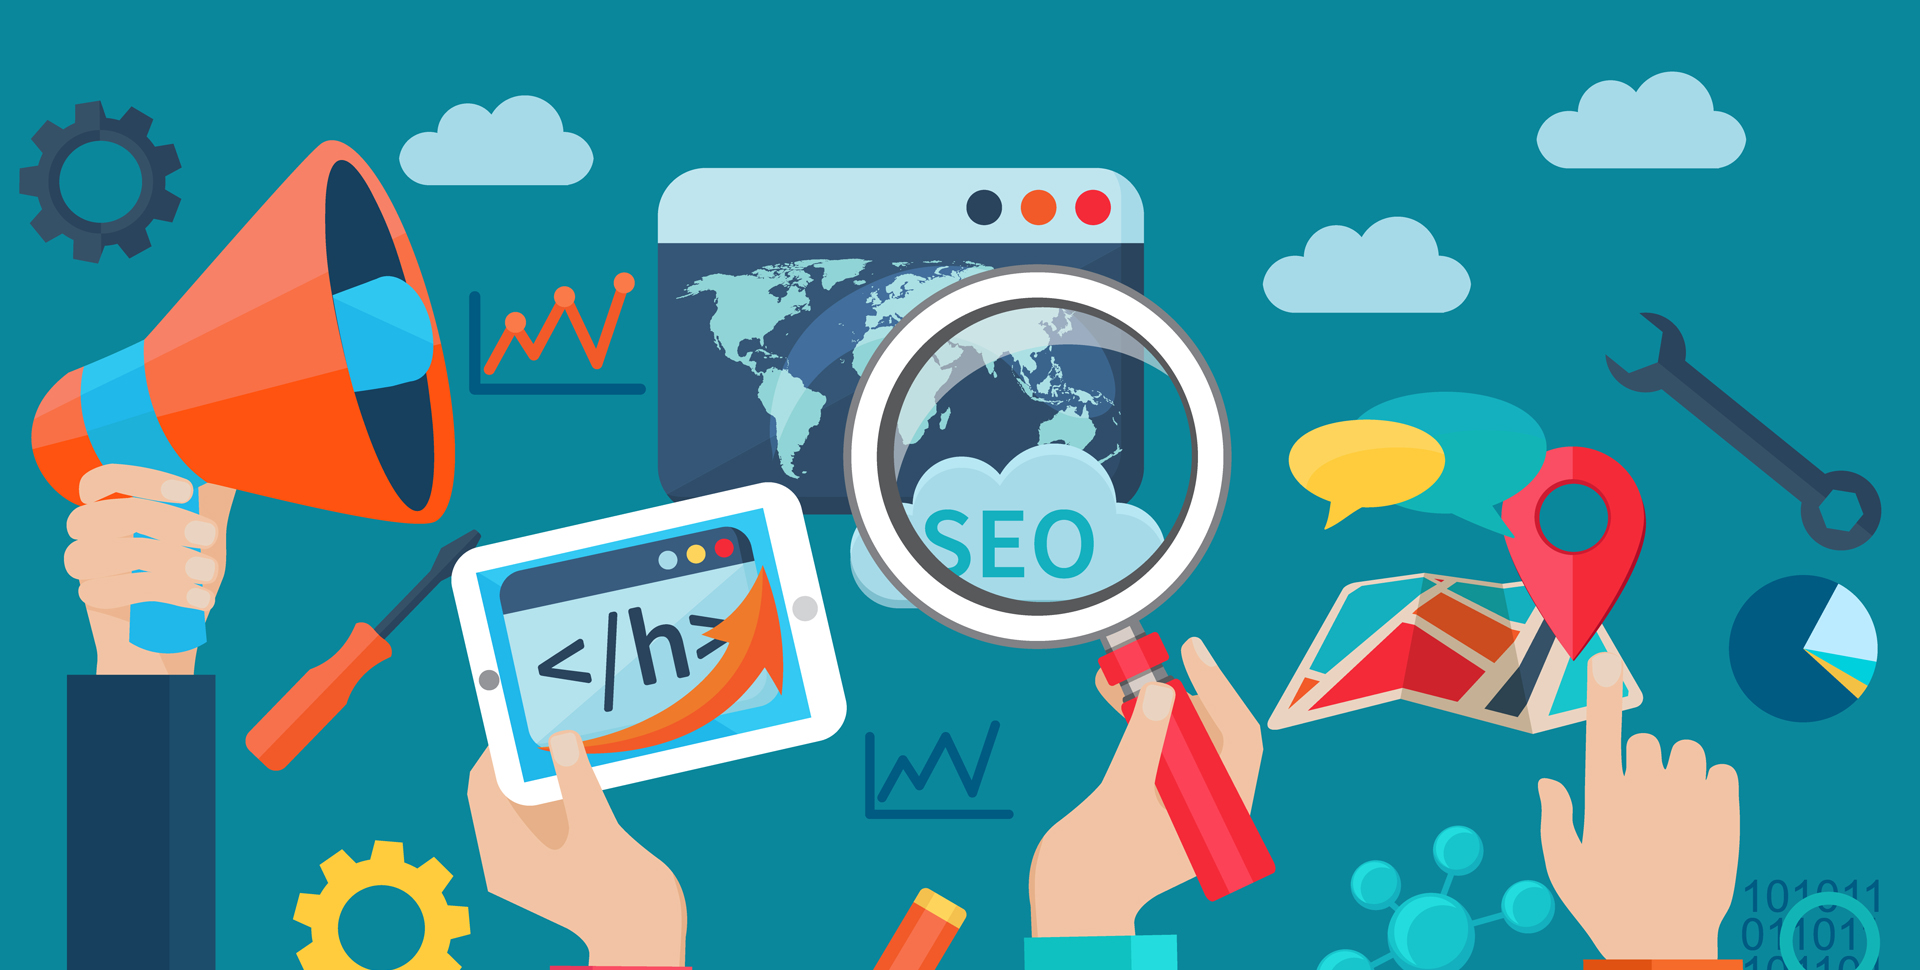 Top 11 Video SEO Tips for Beginners in 2020